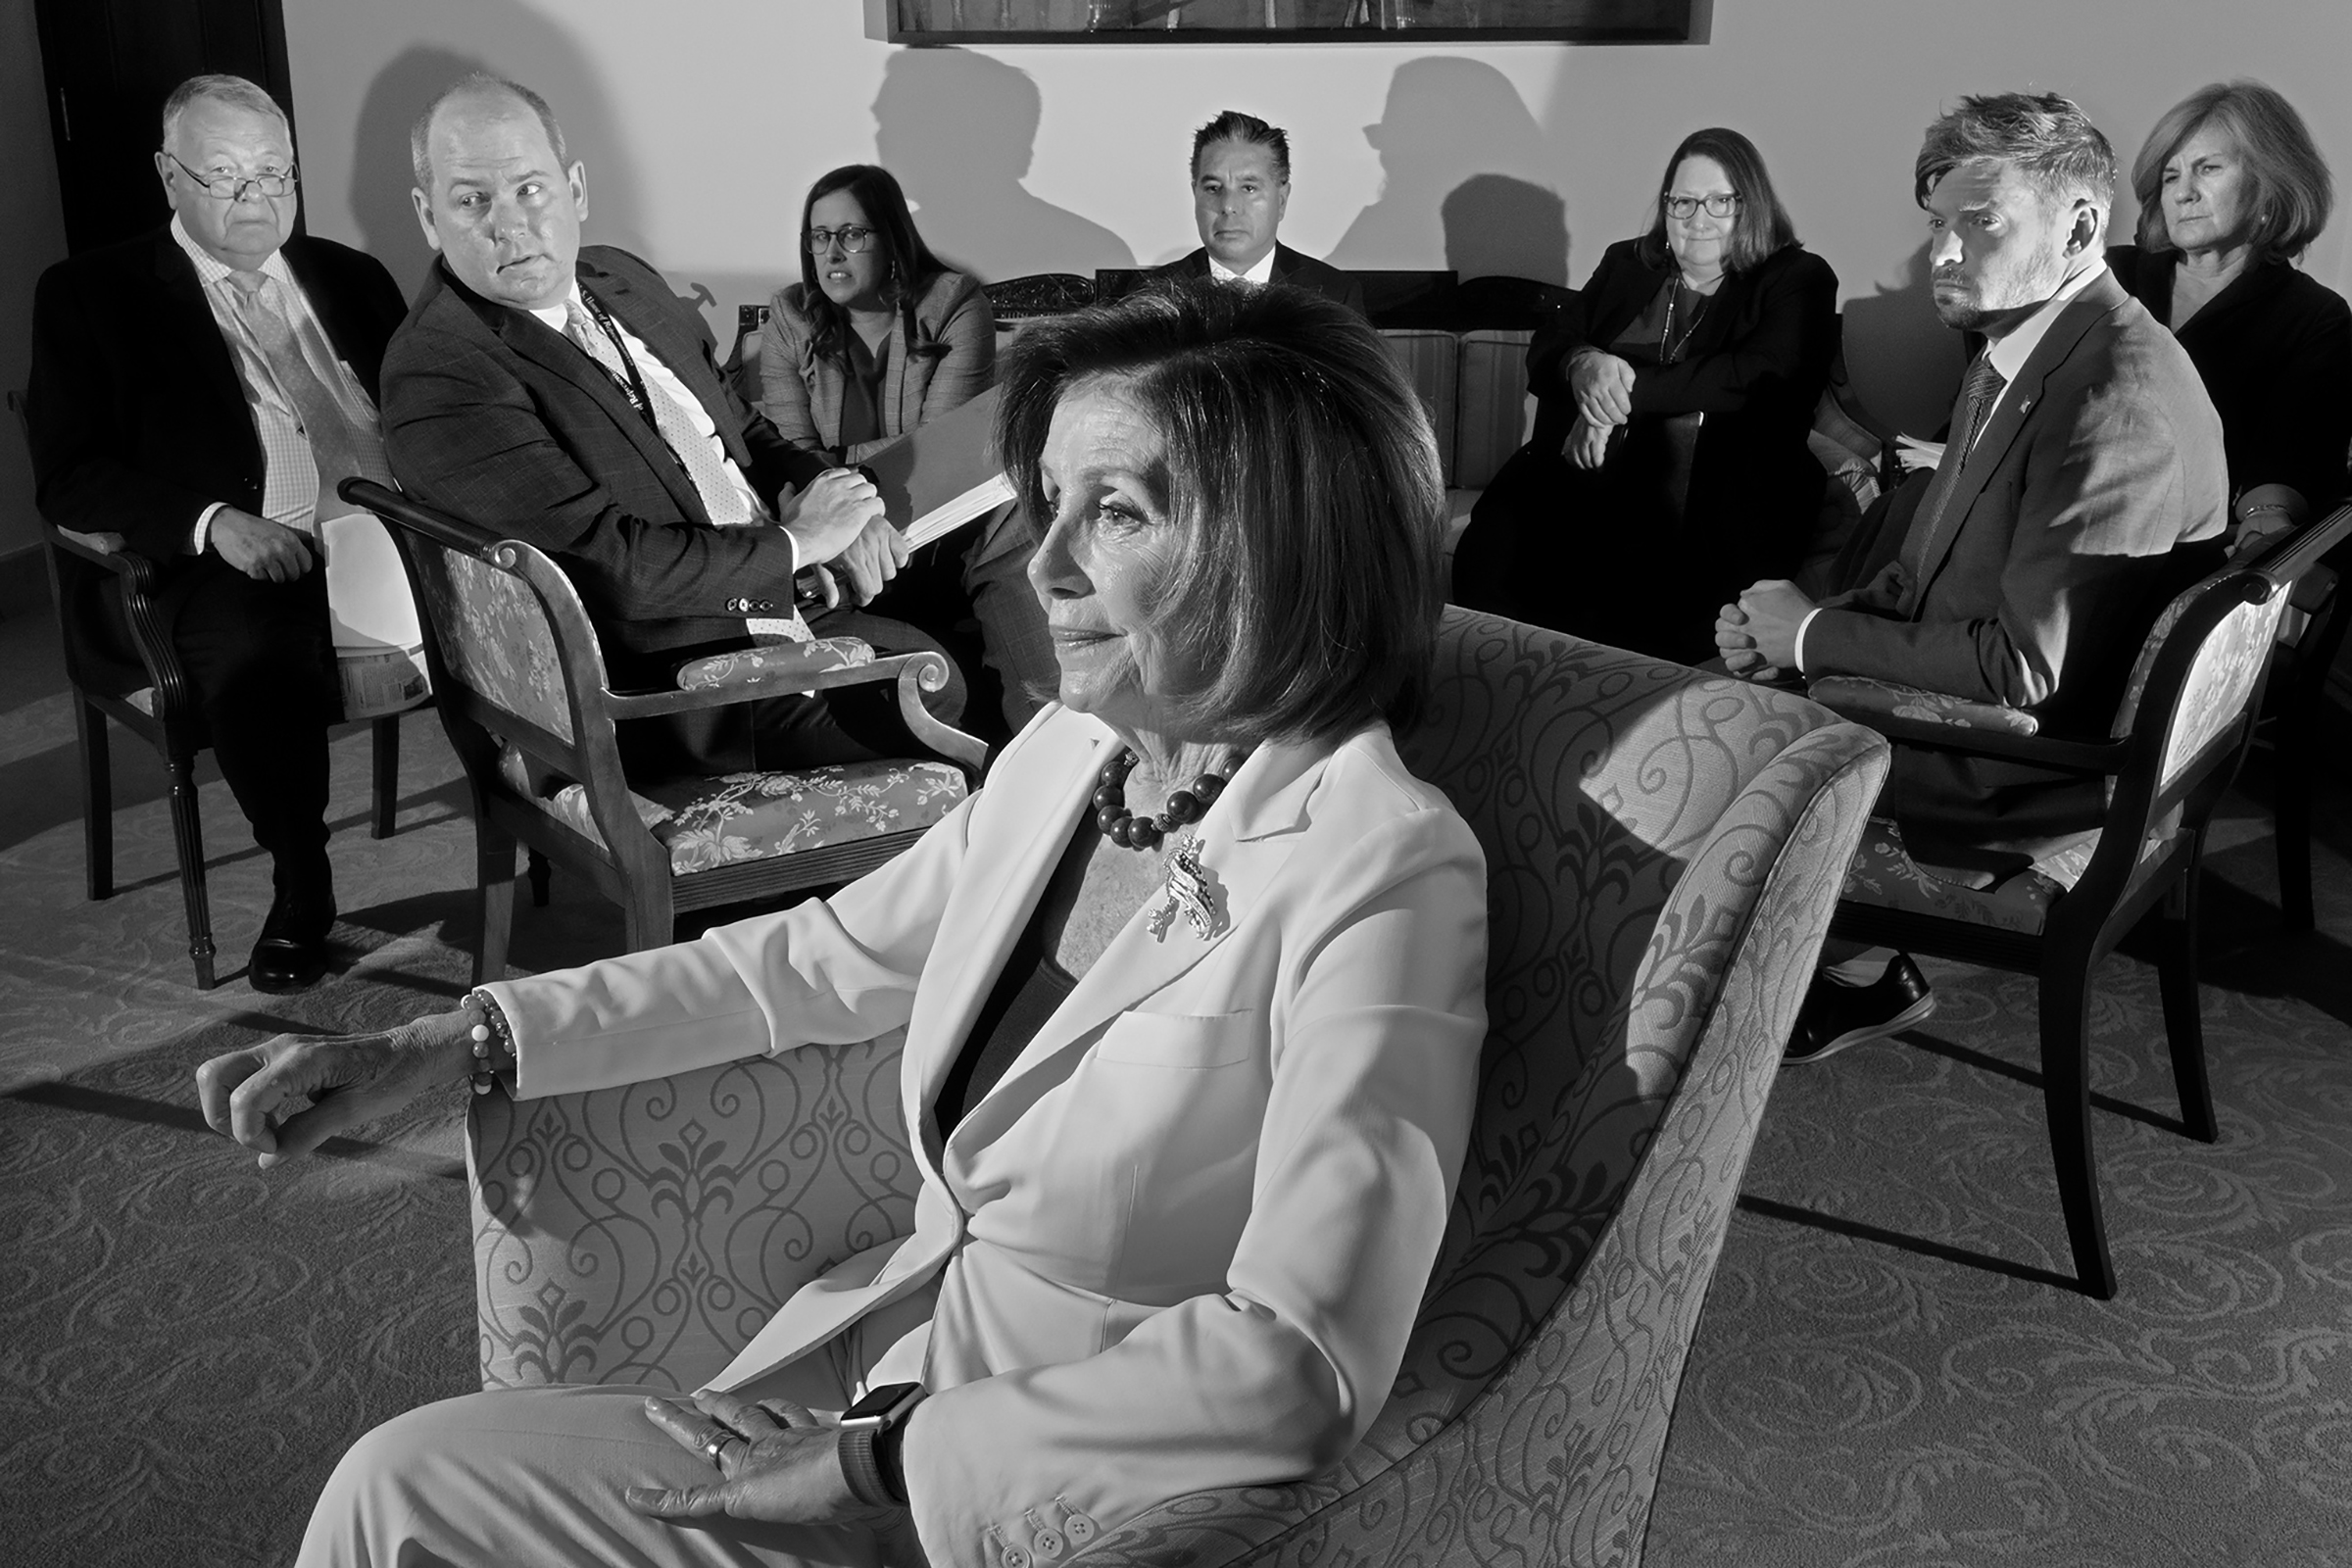 Nancy Pelosi, Speaker of the House, meets with her staff on Capitol Hill on Dec. 5, 2019.  Pelosi's Play,  Jan. 20 issue.